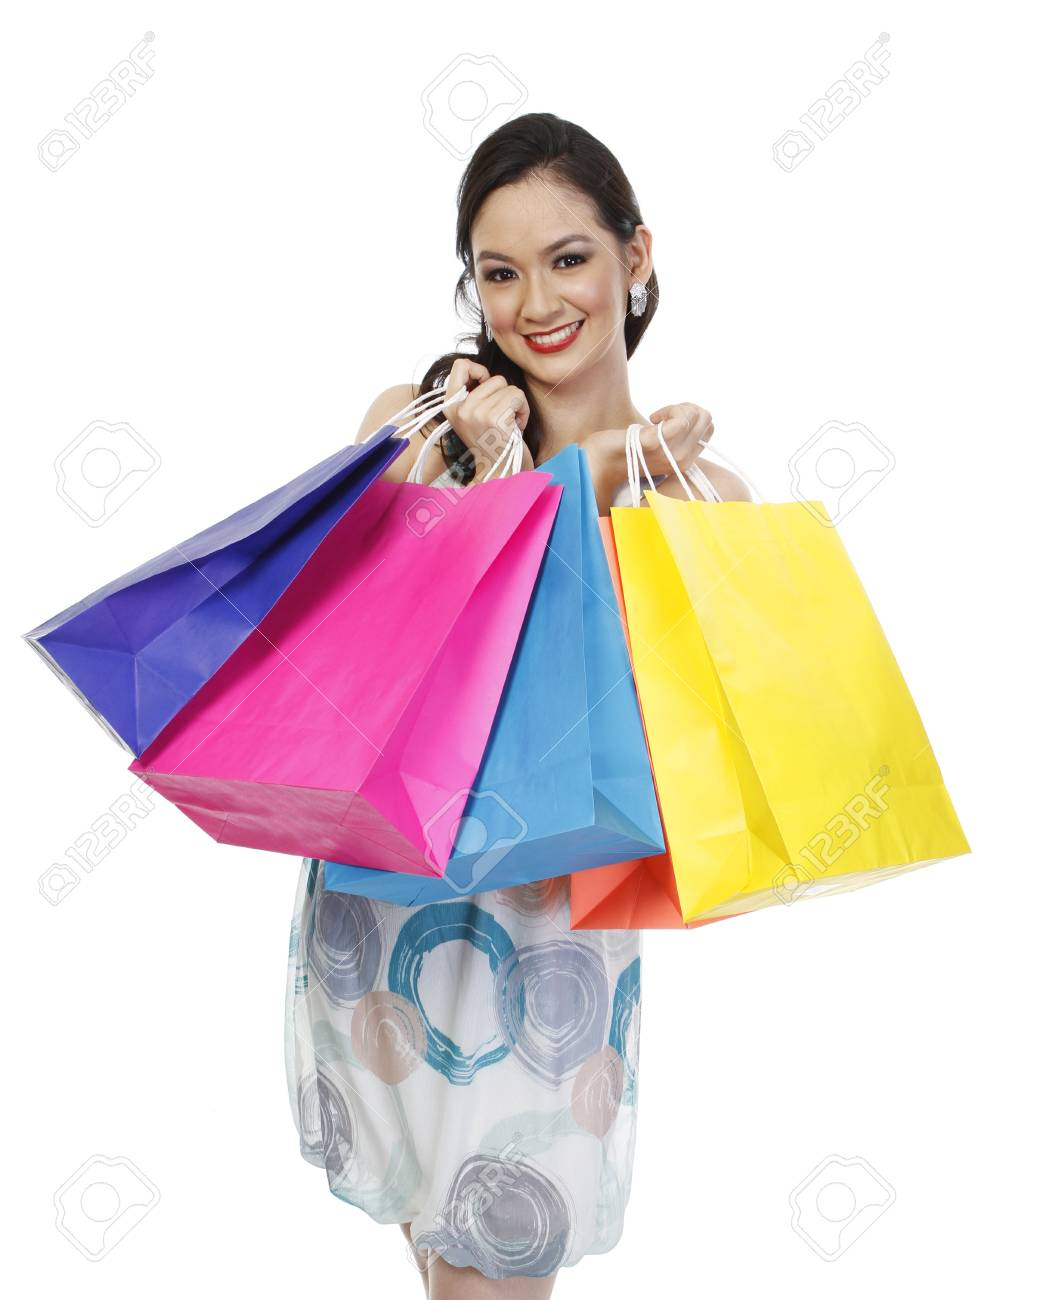 An attractive fashionable woman holding colorful paper shopping bags (isolated on white) Stock Photo - 14796983